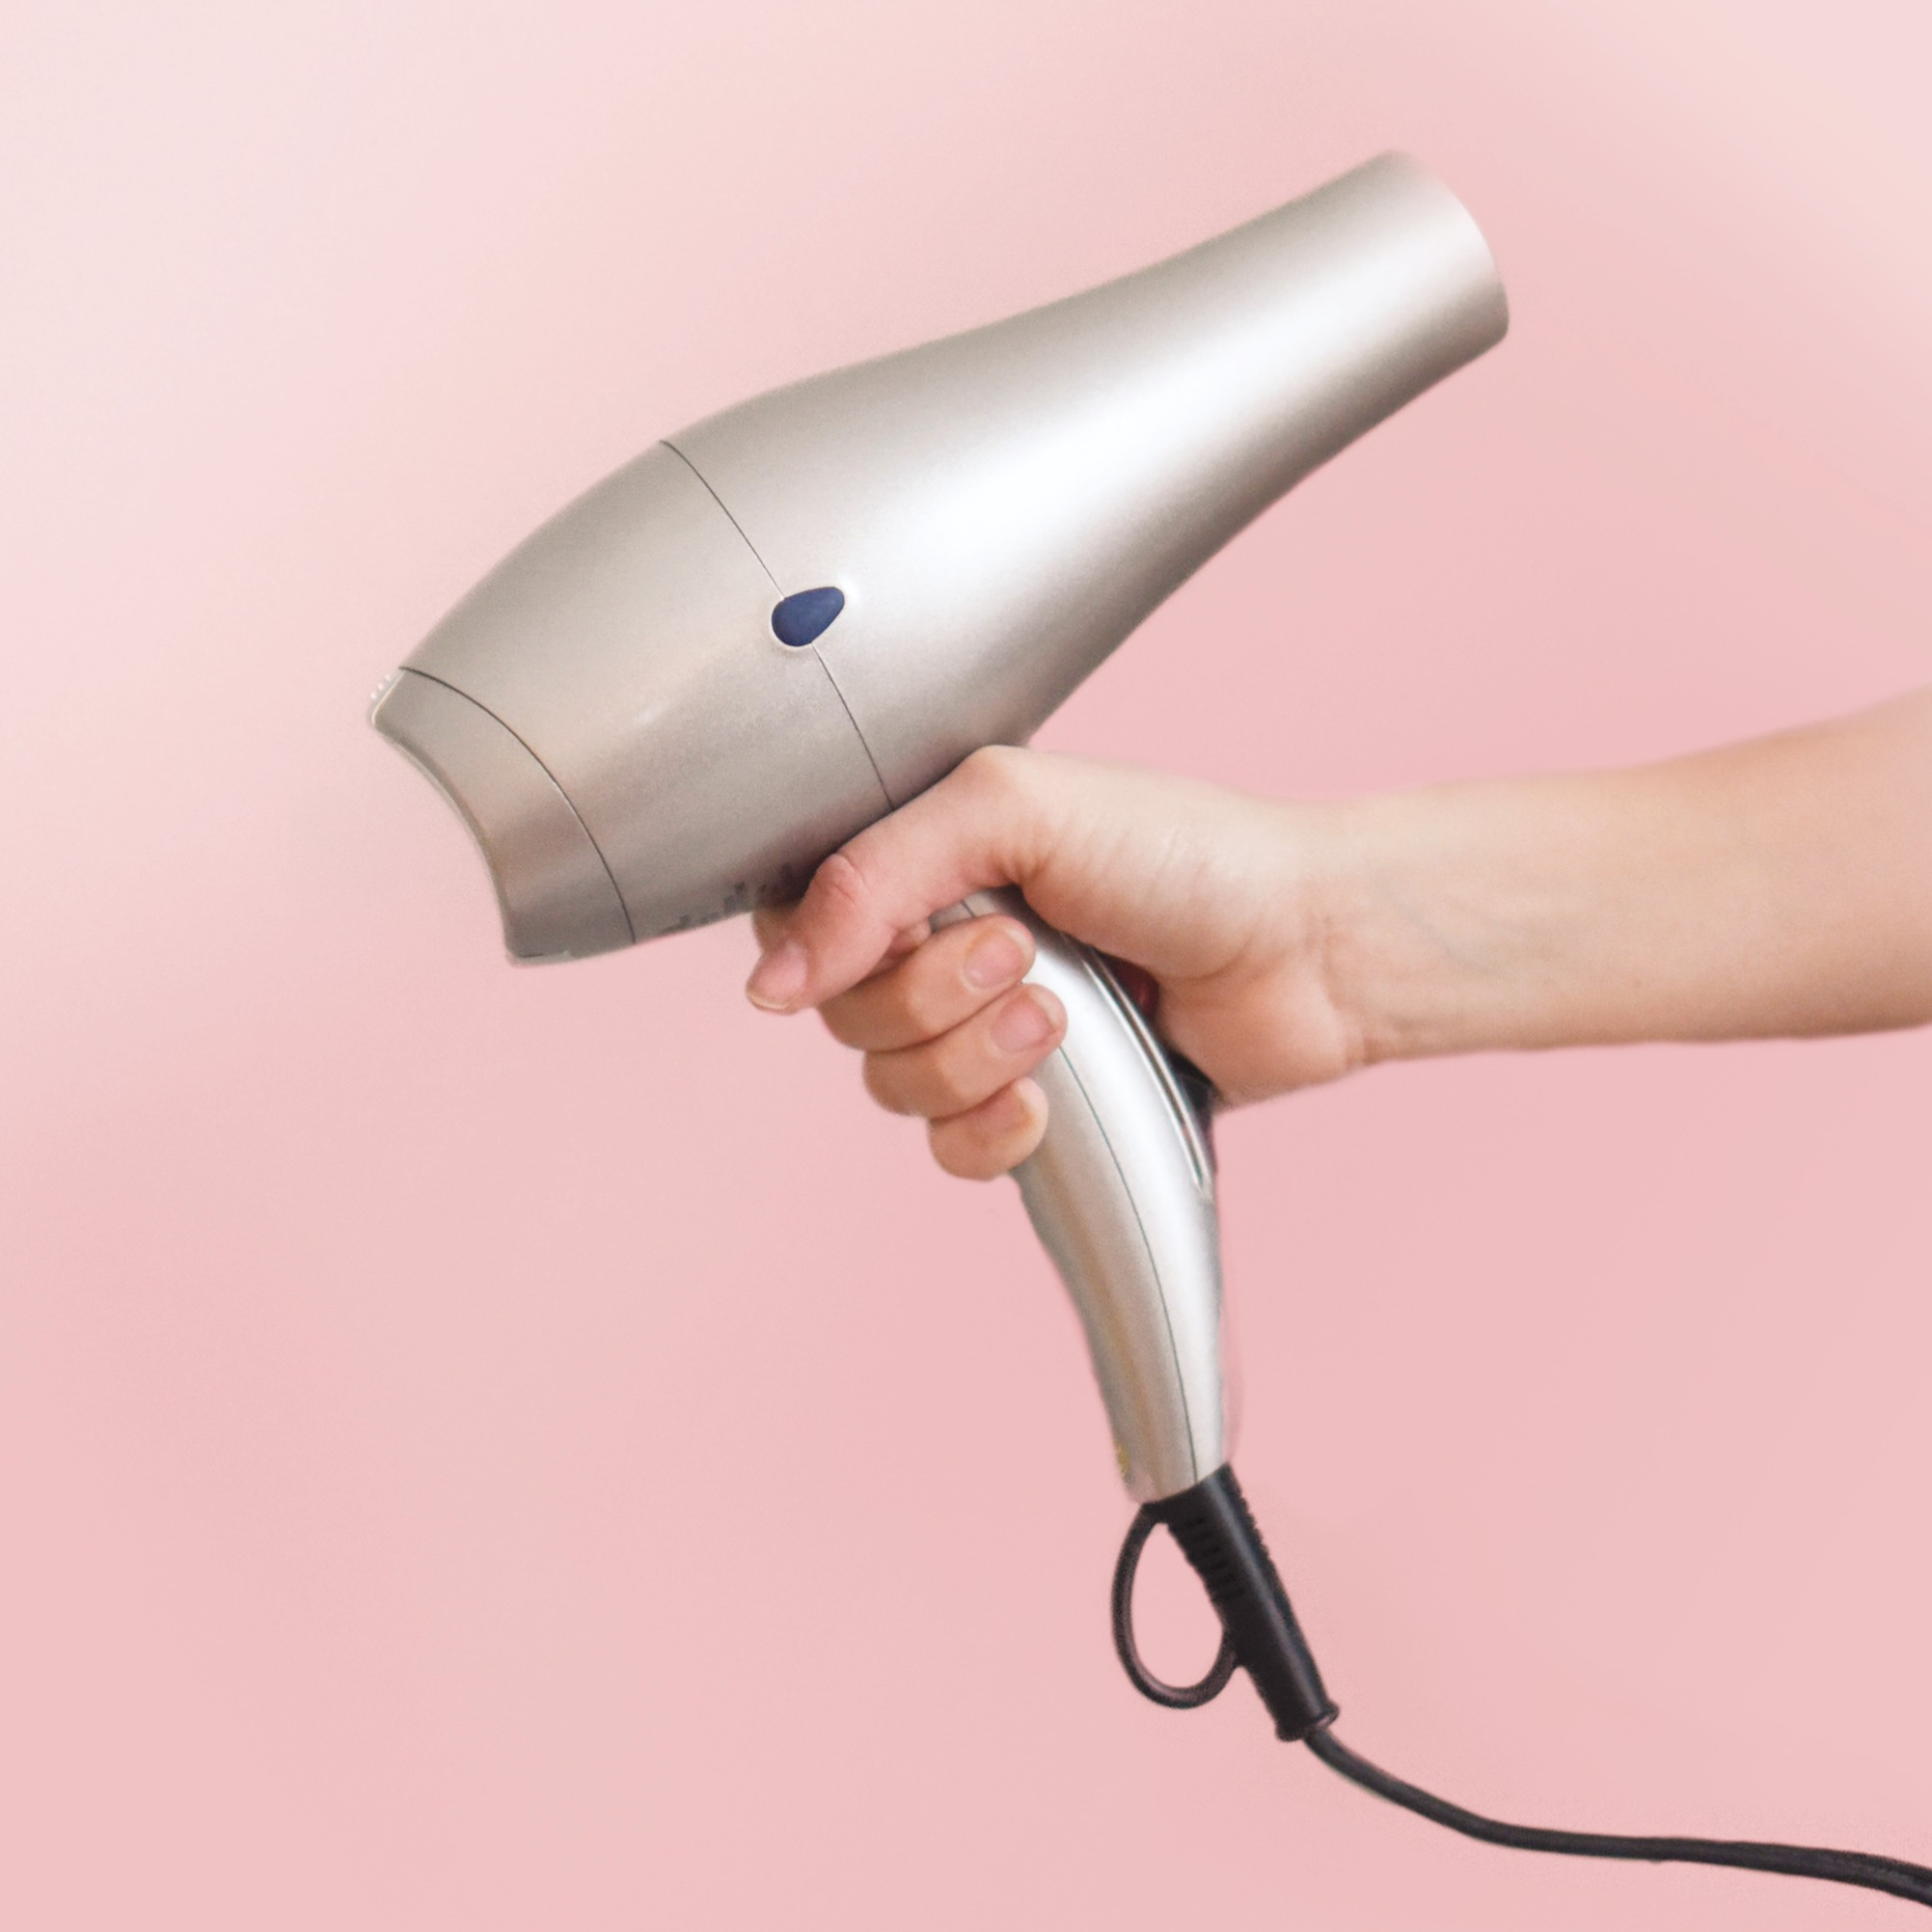 blow-dryer-cosmetic-hair-dryer-973406_ed